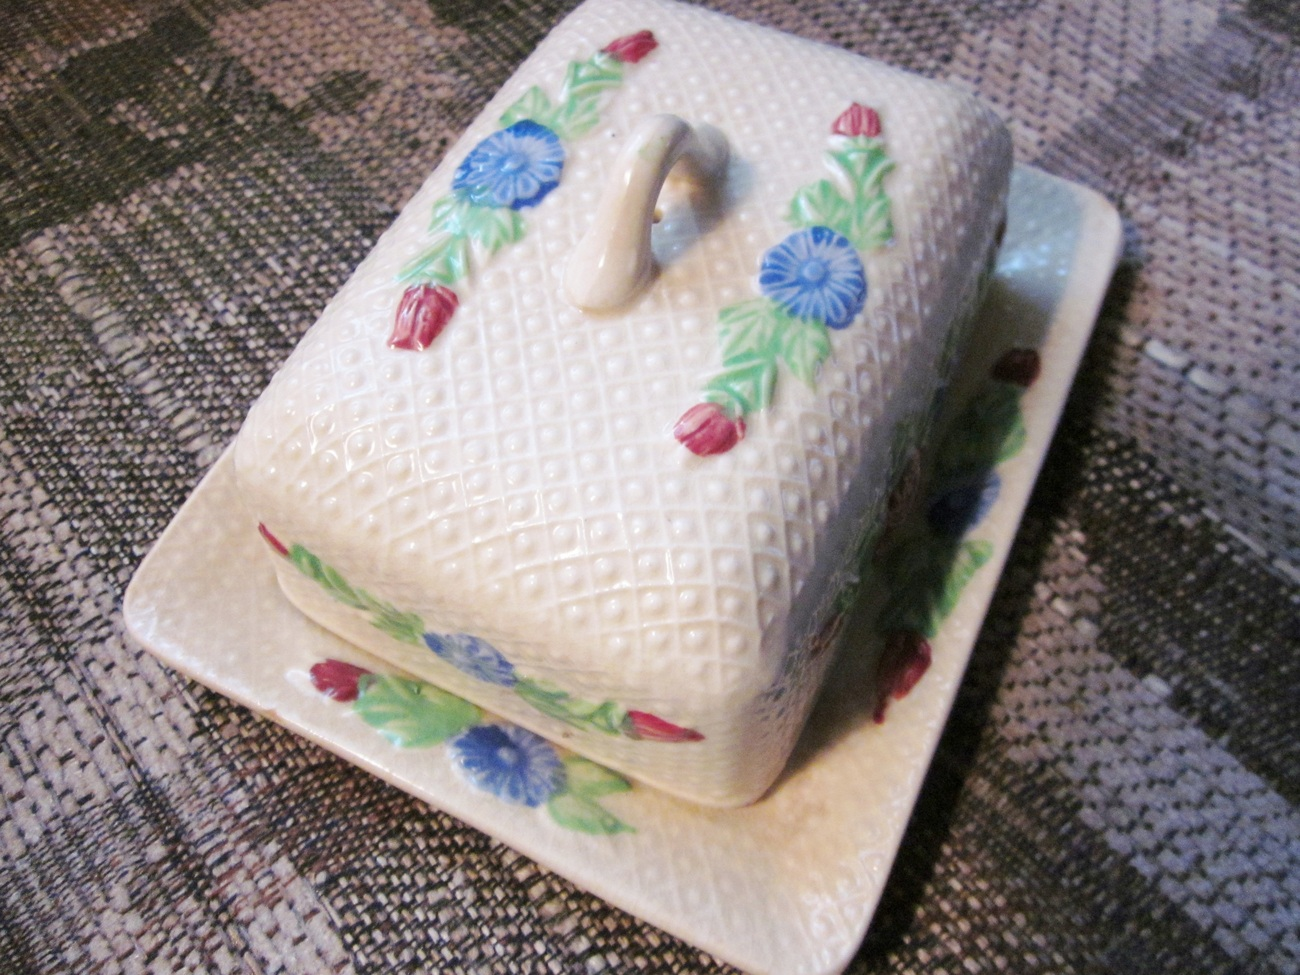 Vintage Ceramic Butter Dish Set with Flowers